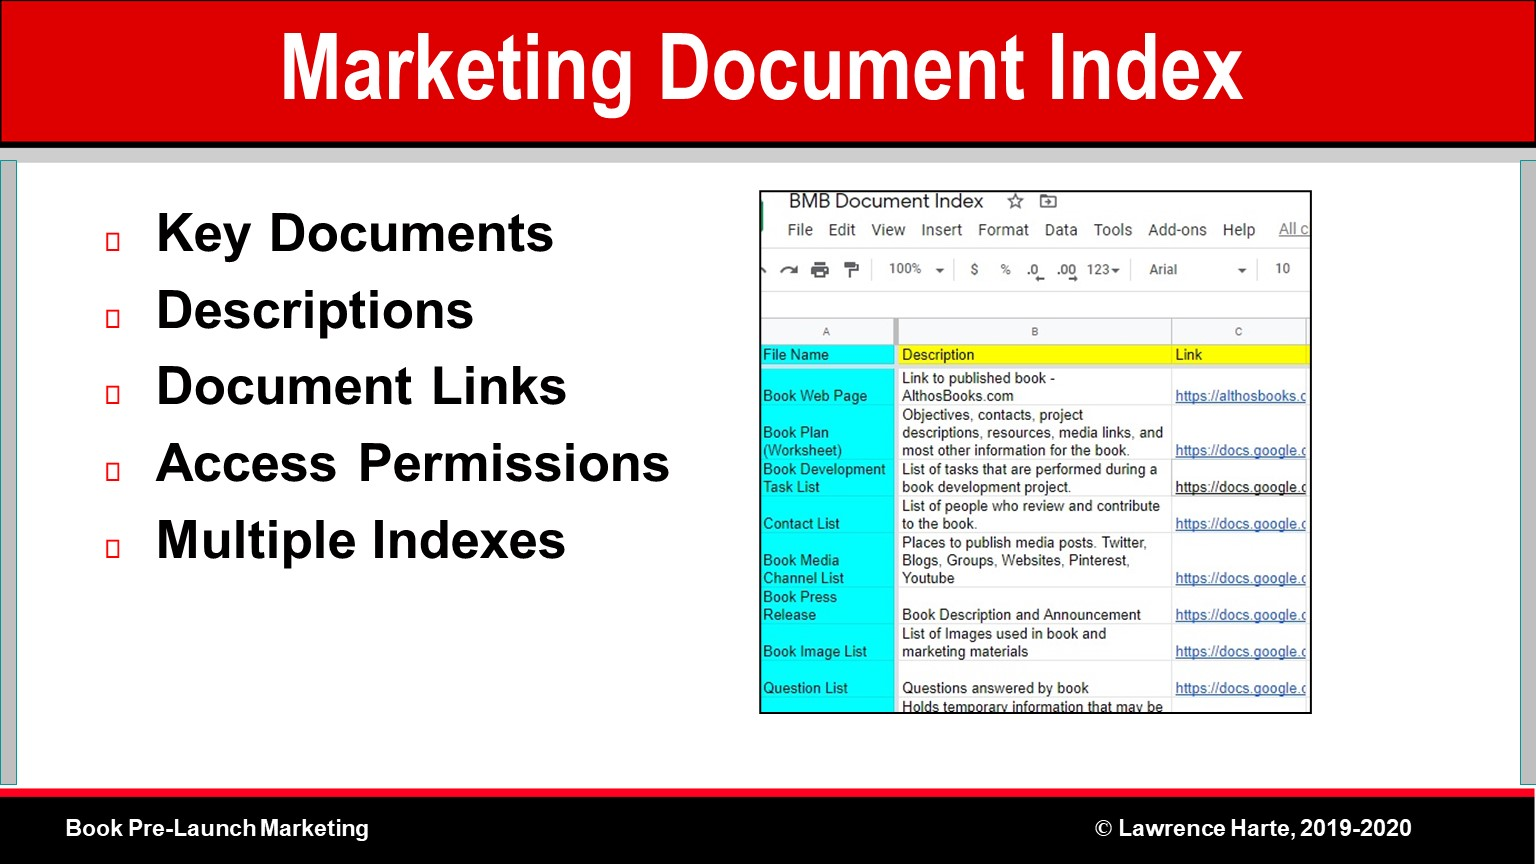 Book Pre-Launch Marketing Document Index